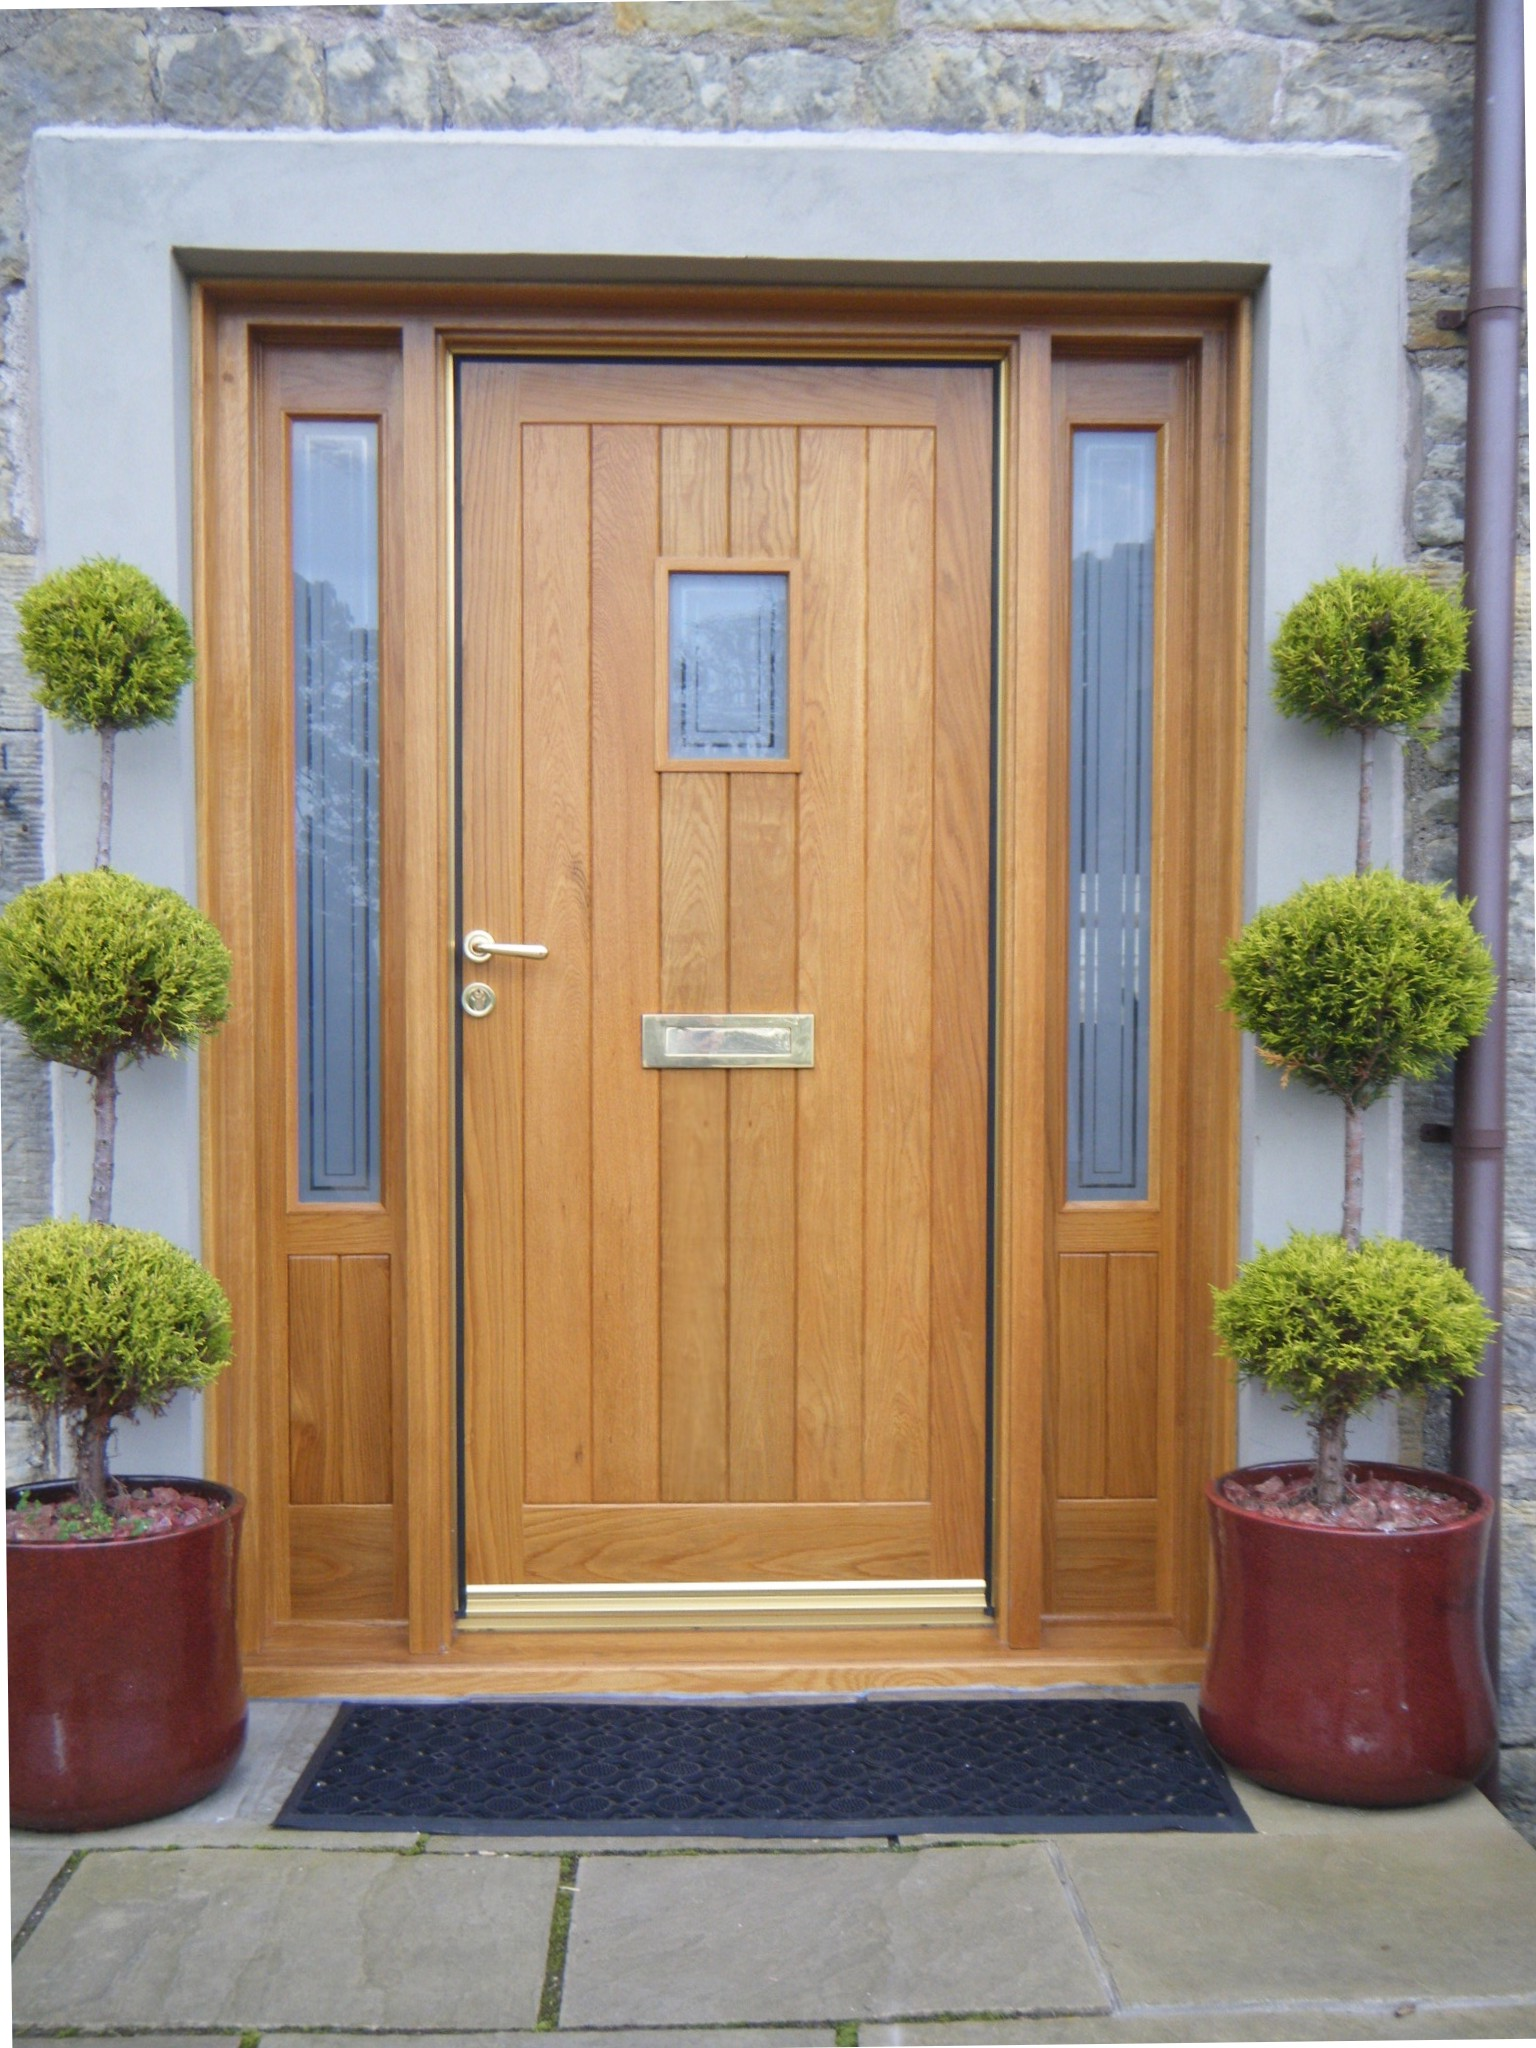 Doors external london hardwood external door hardwooddoors for Hardwood entrance doors